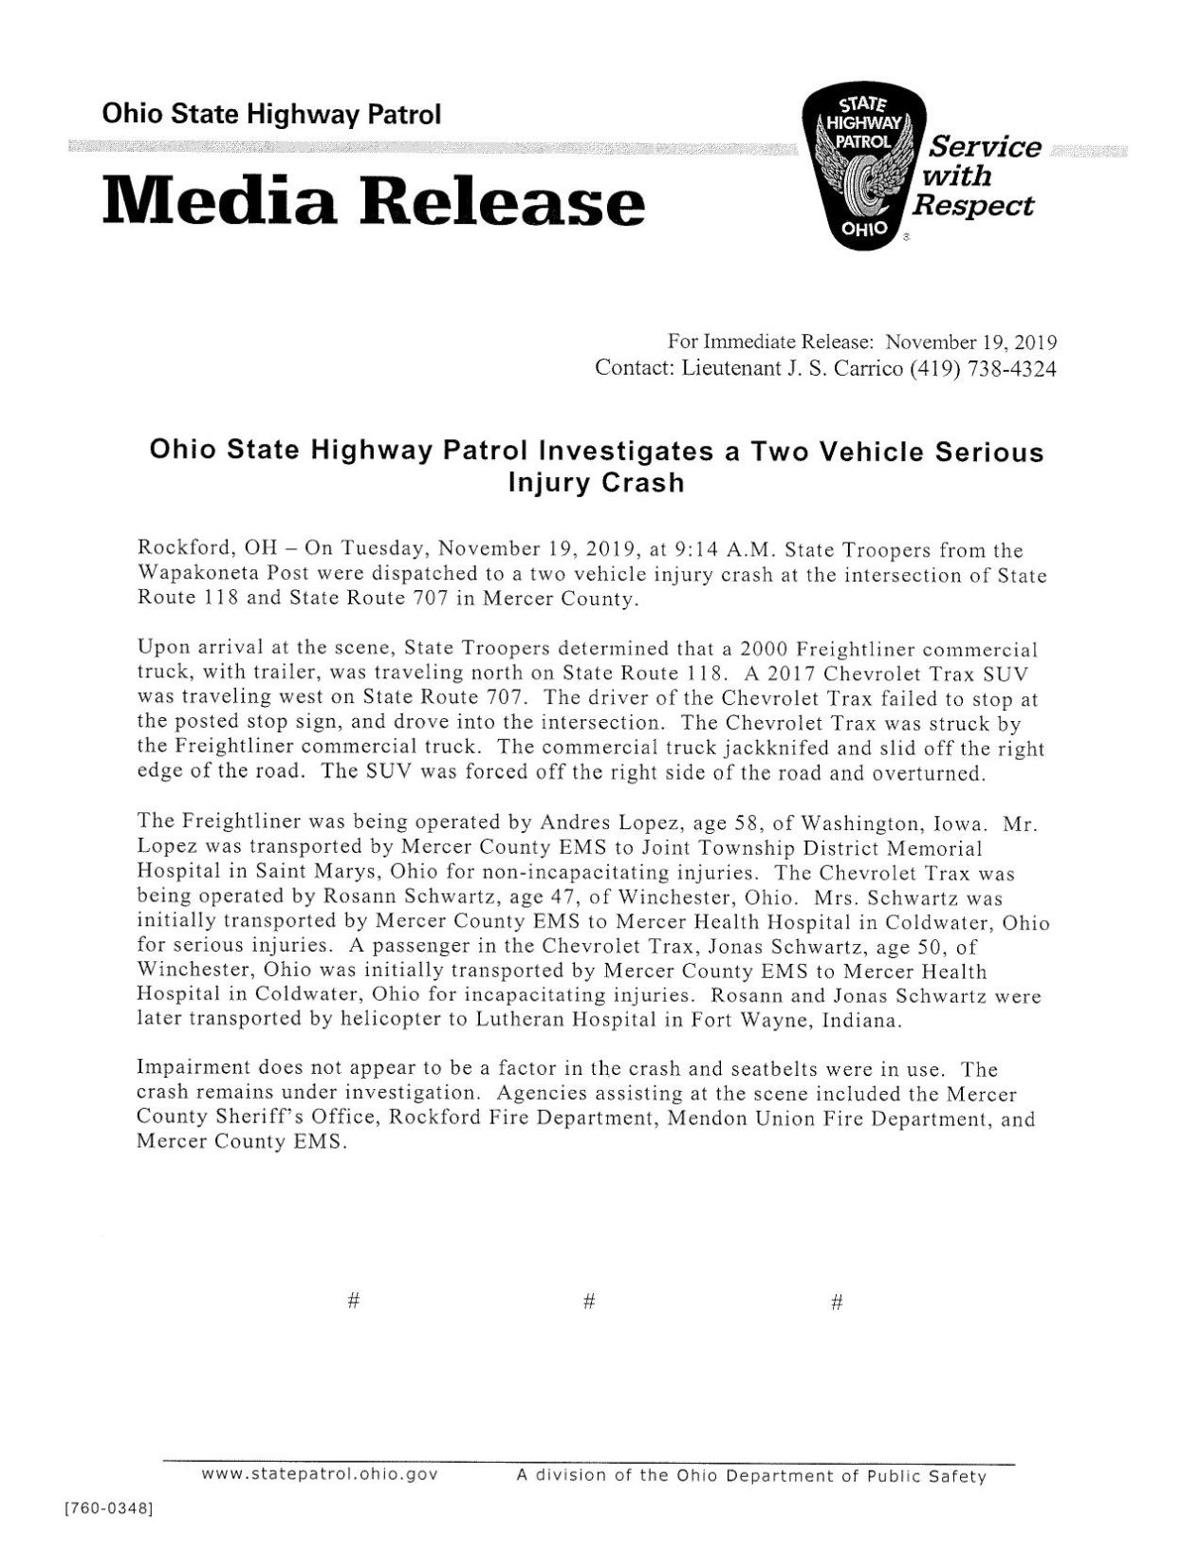 Serious two-vehicle crash in Mercer County PDF